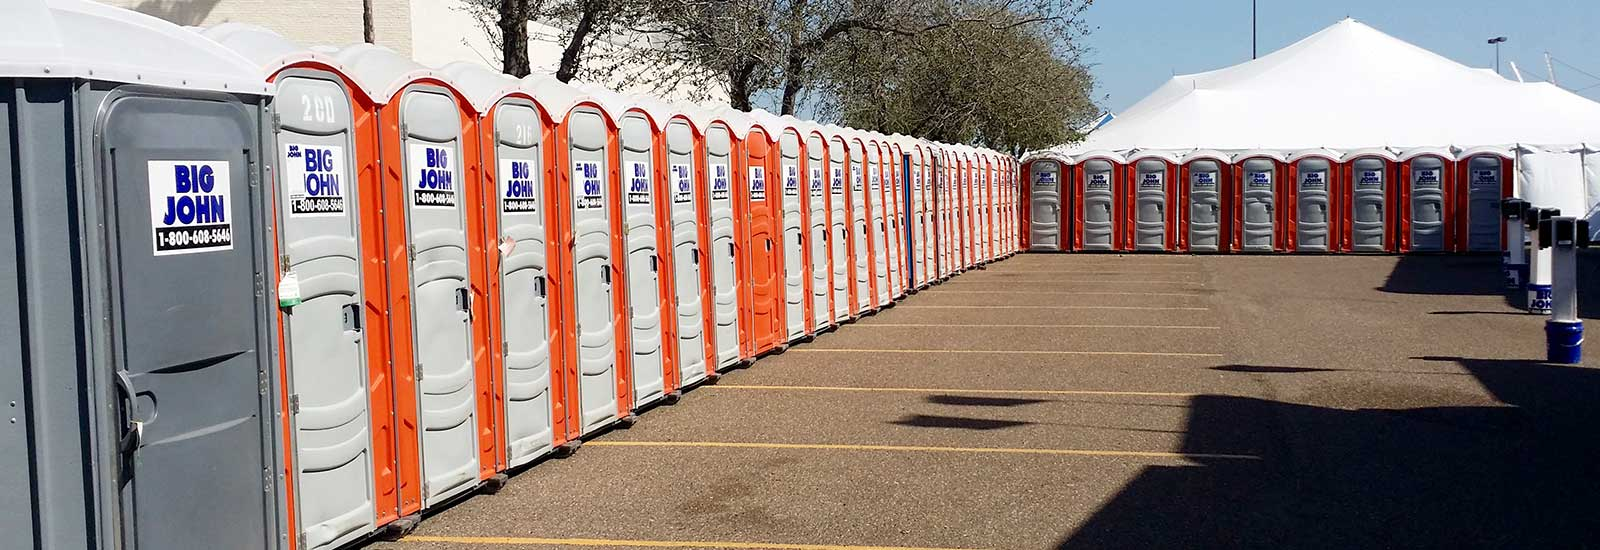 big john site services portable toilet rentals in texas